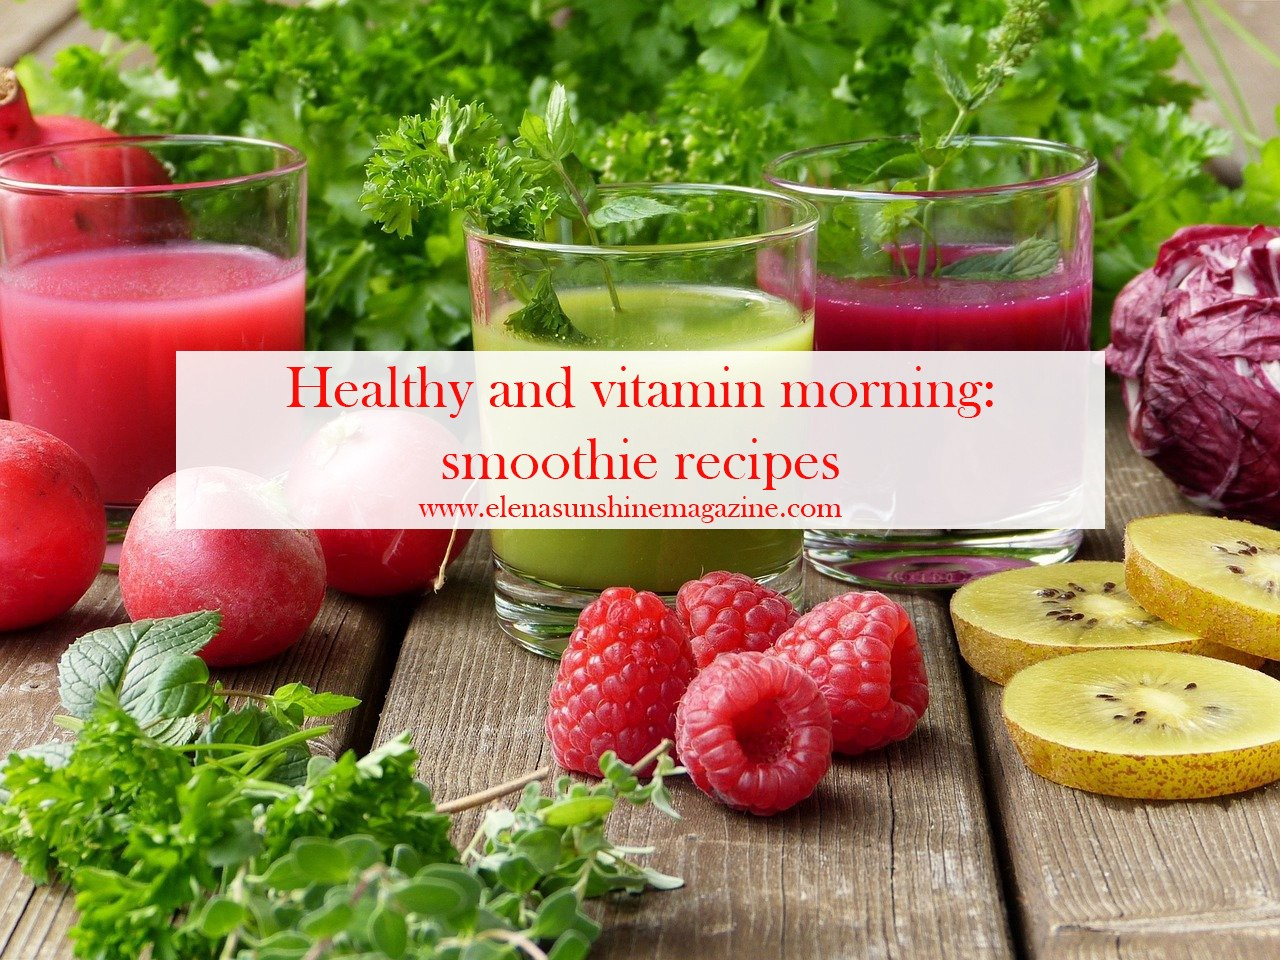 Healthy and vitamin morning: smoothie recipes